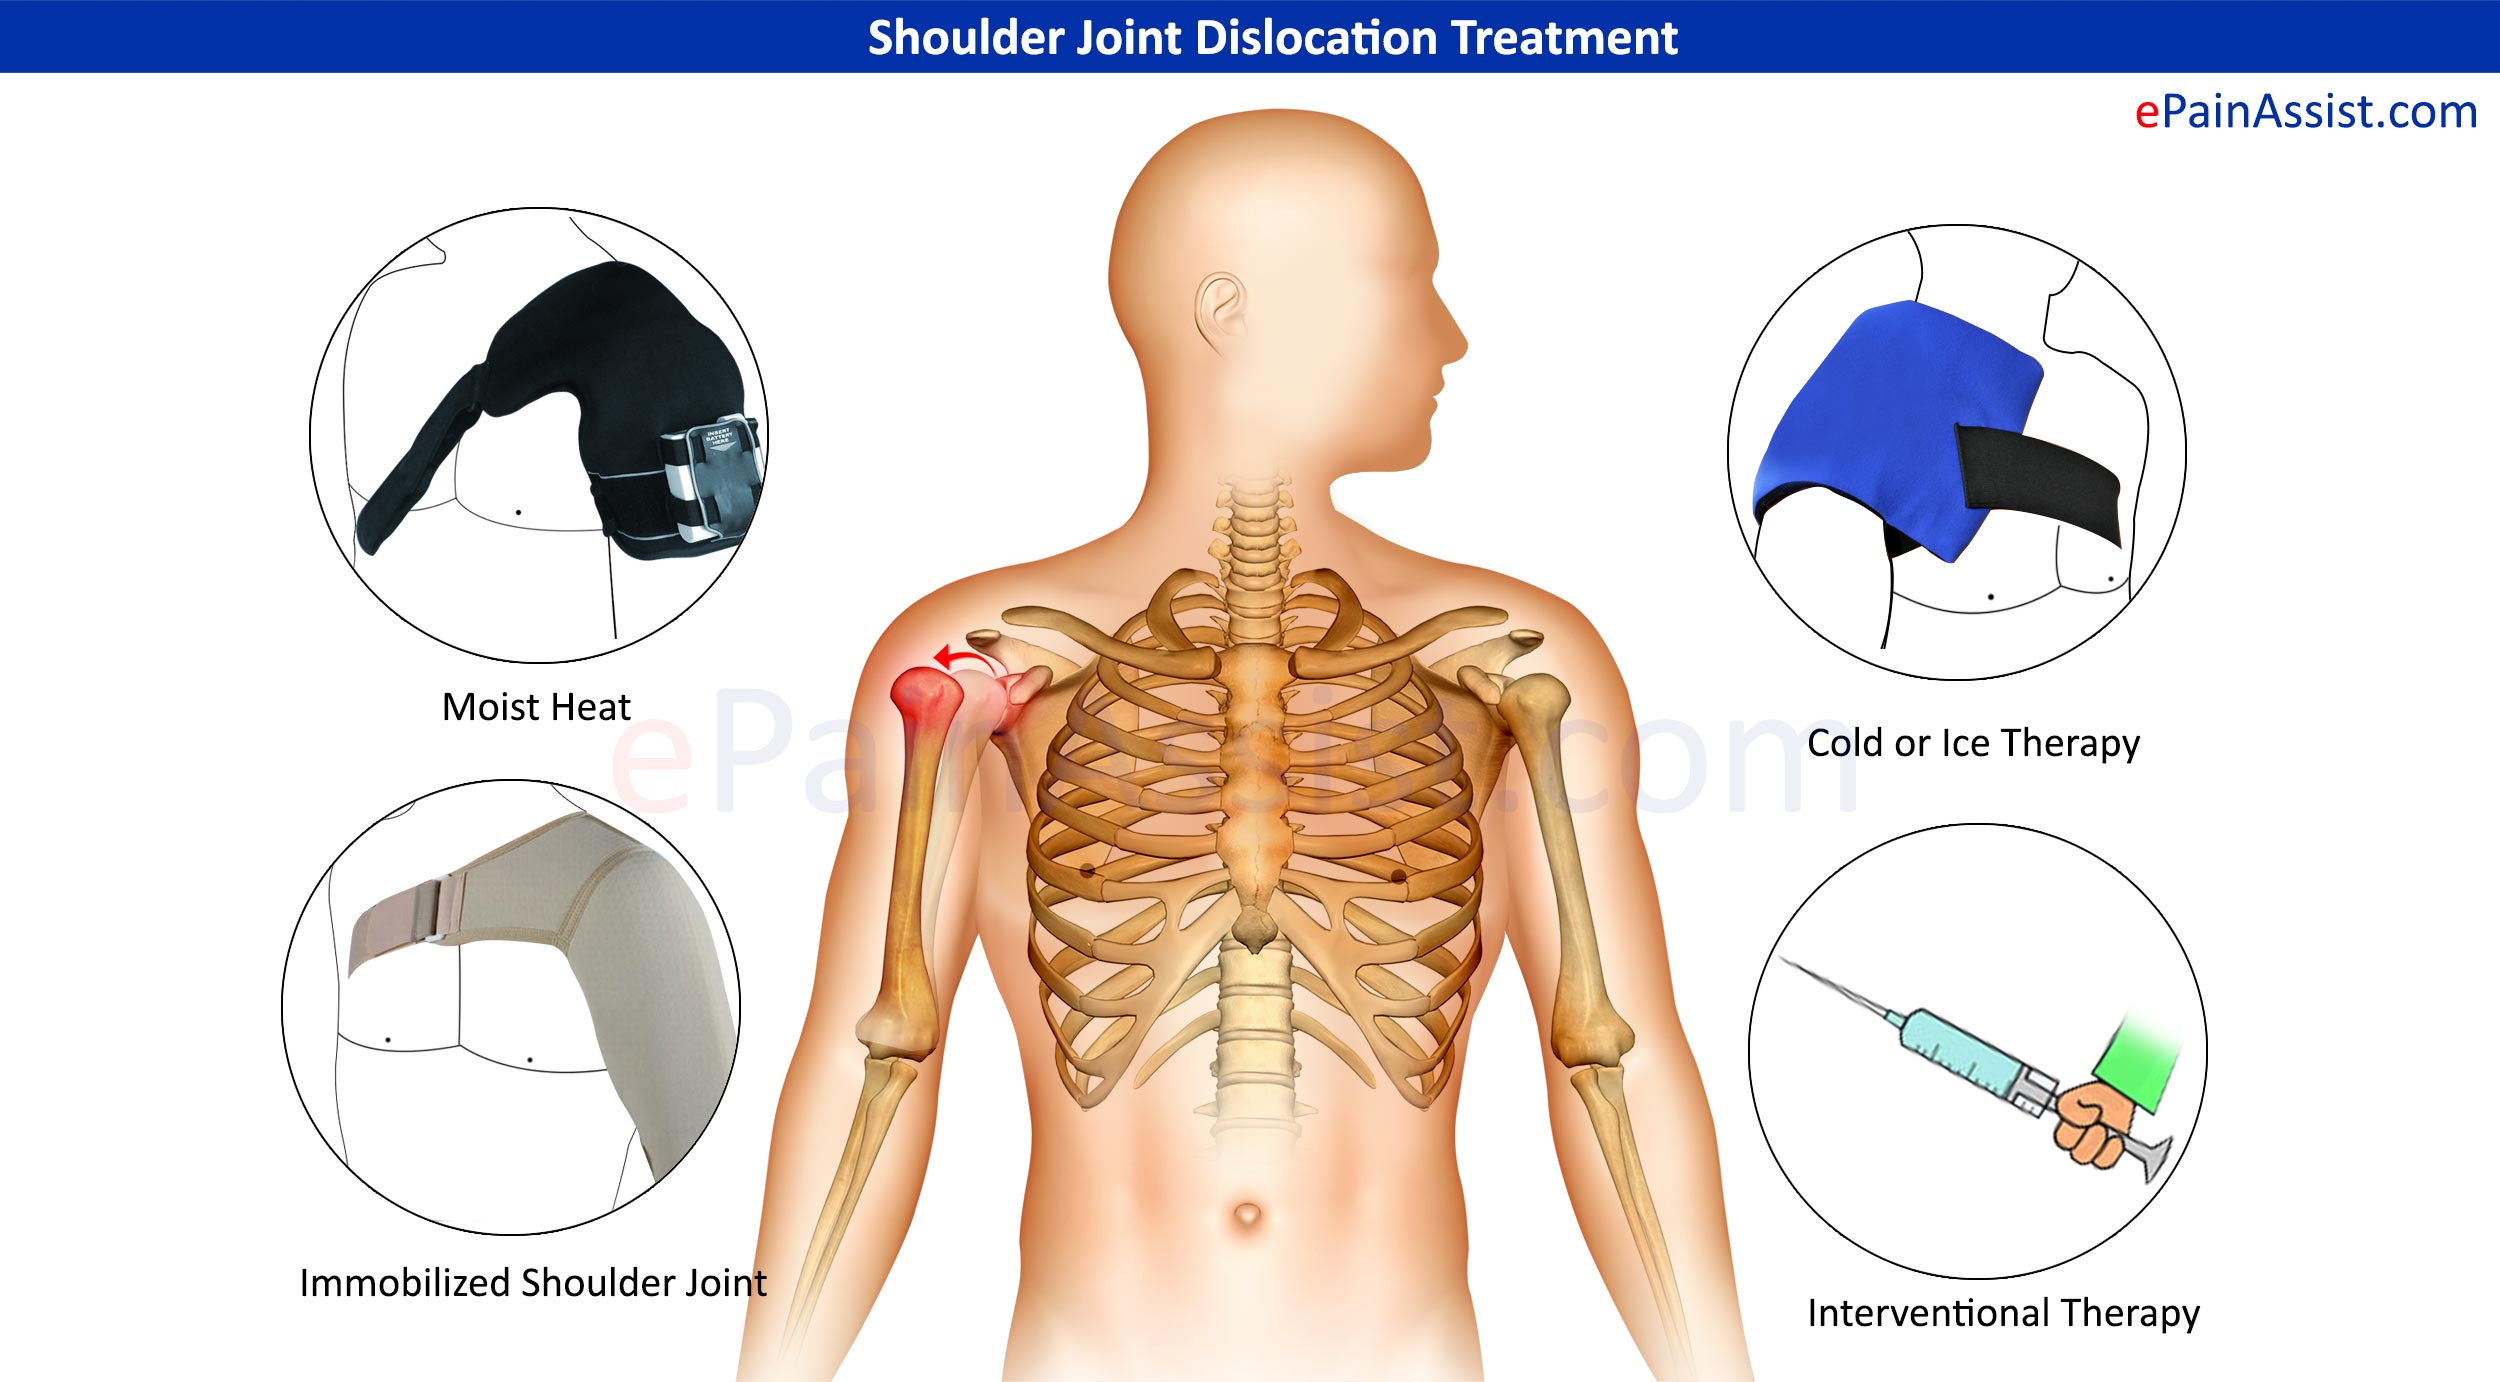 Shoulder Joint Dislocation: Treatment, Symptoms, Signs